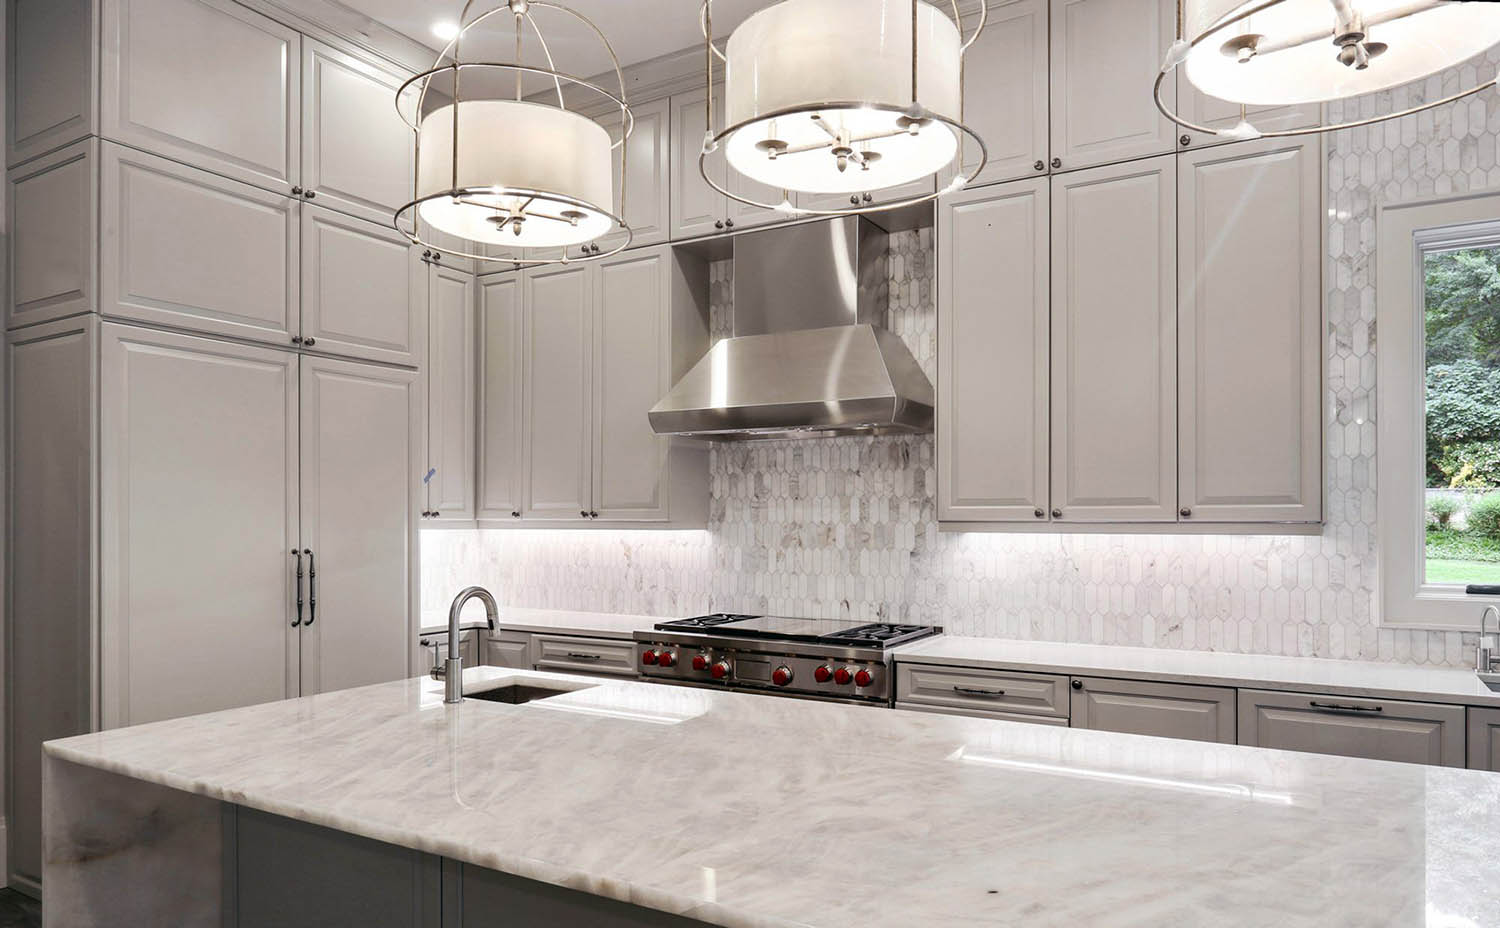 Beautiful kitchen design featuring warm gray cream cabinets and marble.